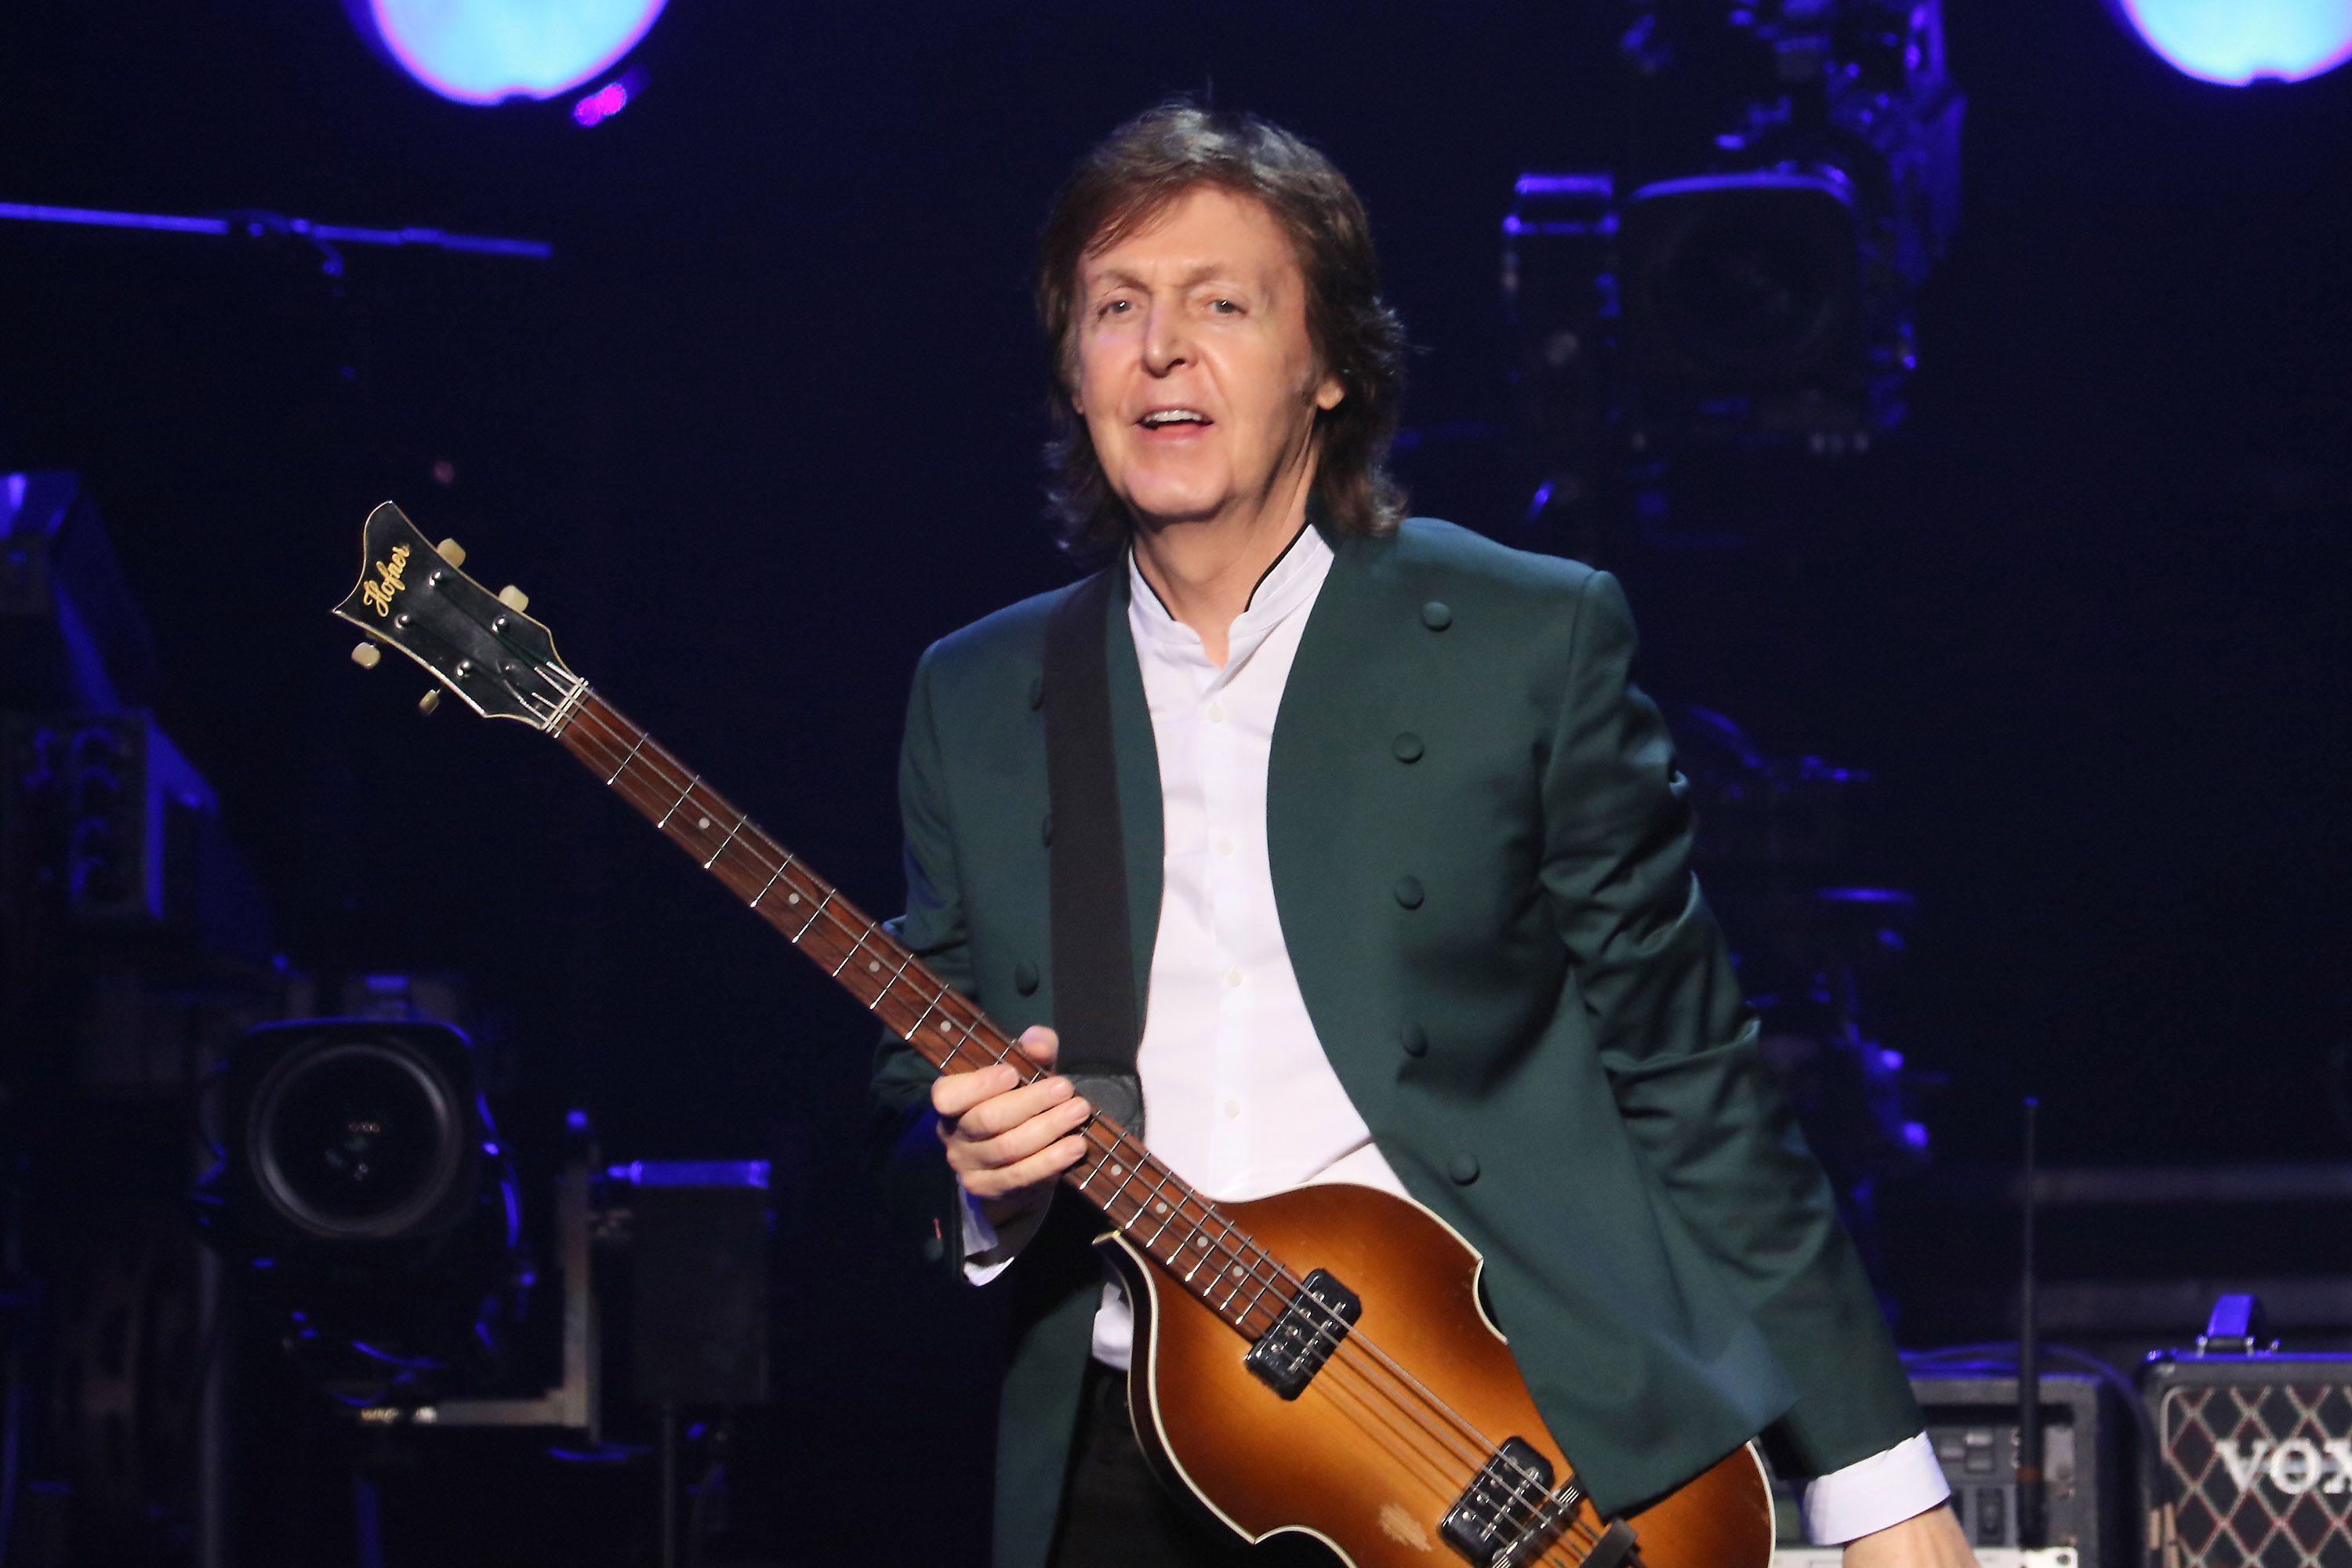 Paul McCartney Performs Live At The Budokan In Tokyo Japan On April 28th 2015